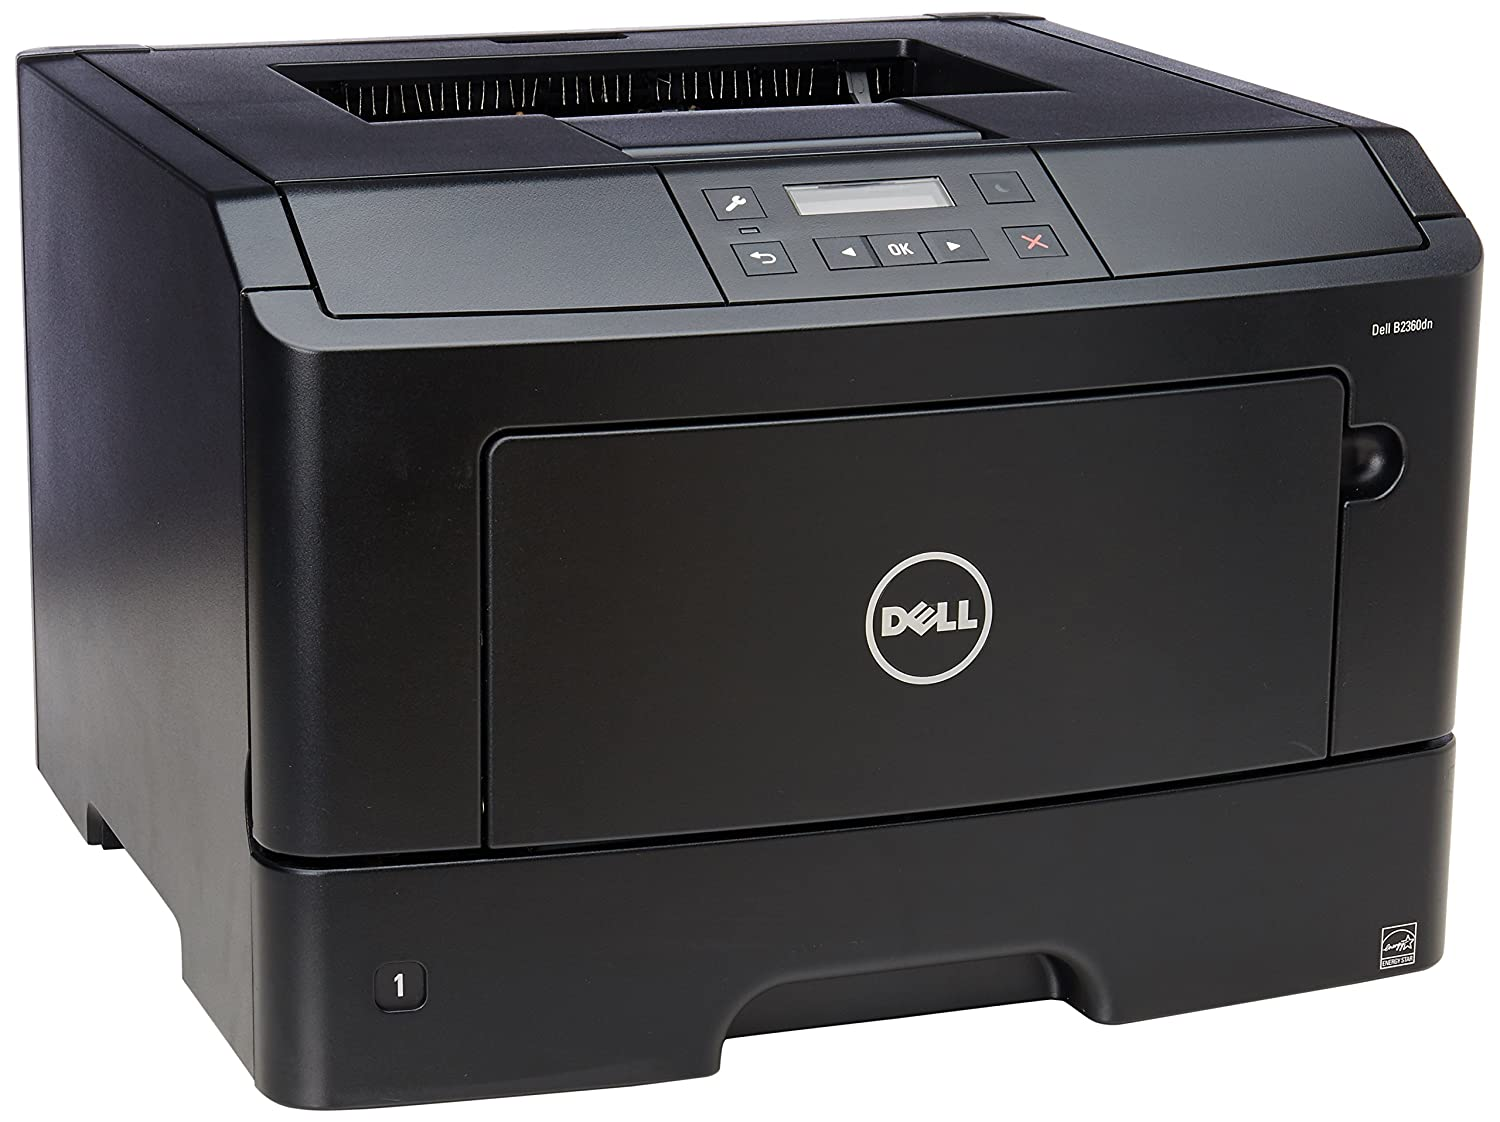 DELL B2360DN PRINTER WINDOWS 8 DRIVER